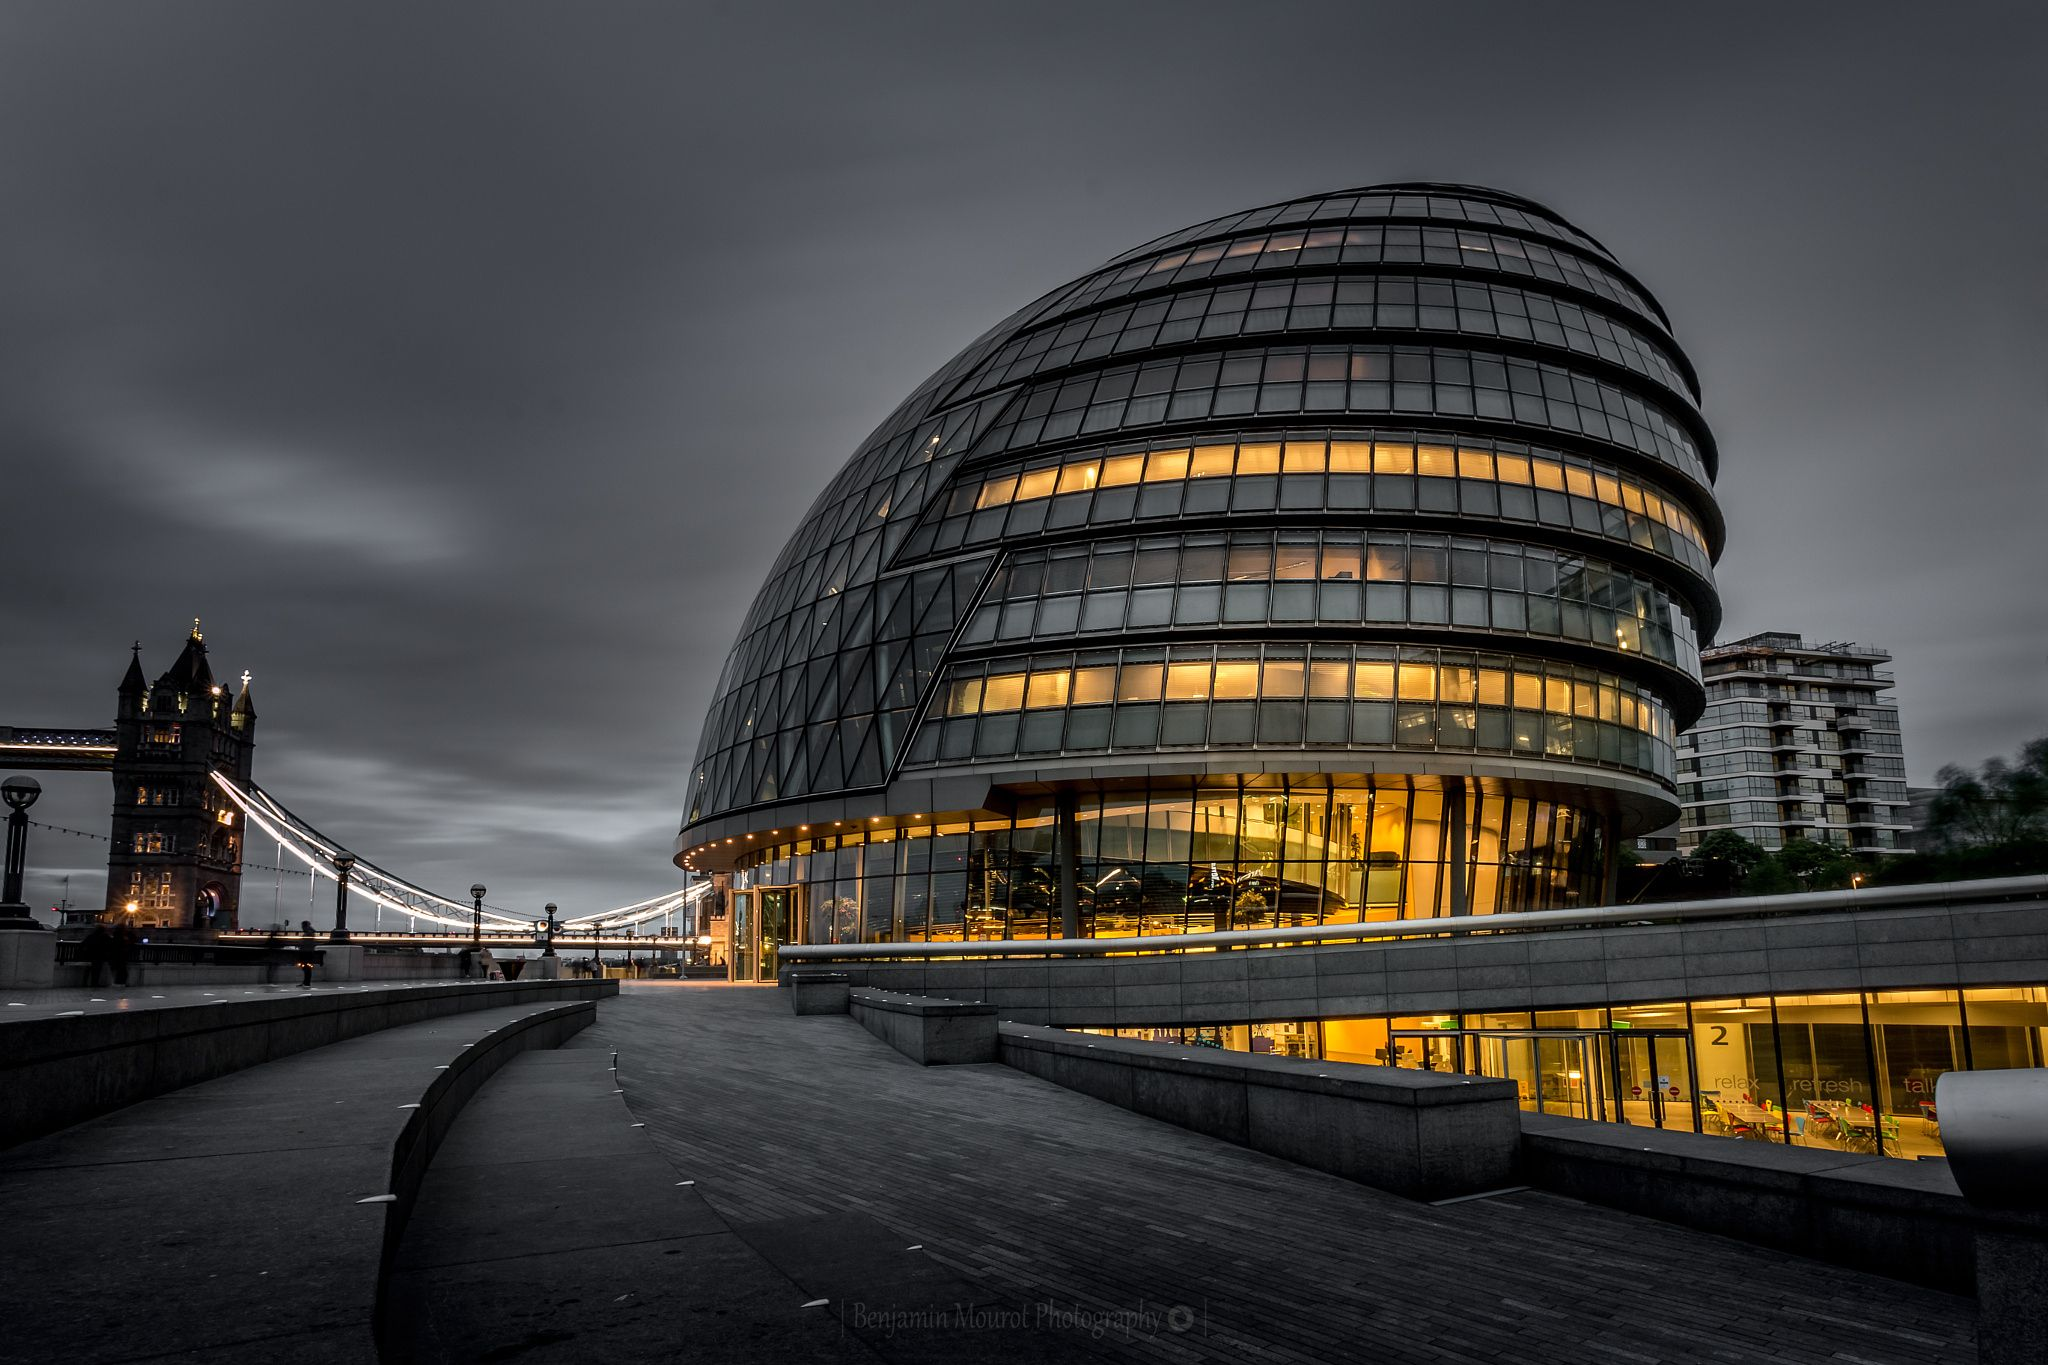 Photograph City Hall by Benjamin MOUROT on 500px